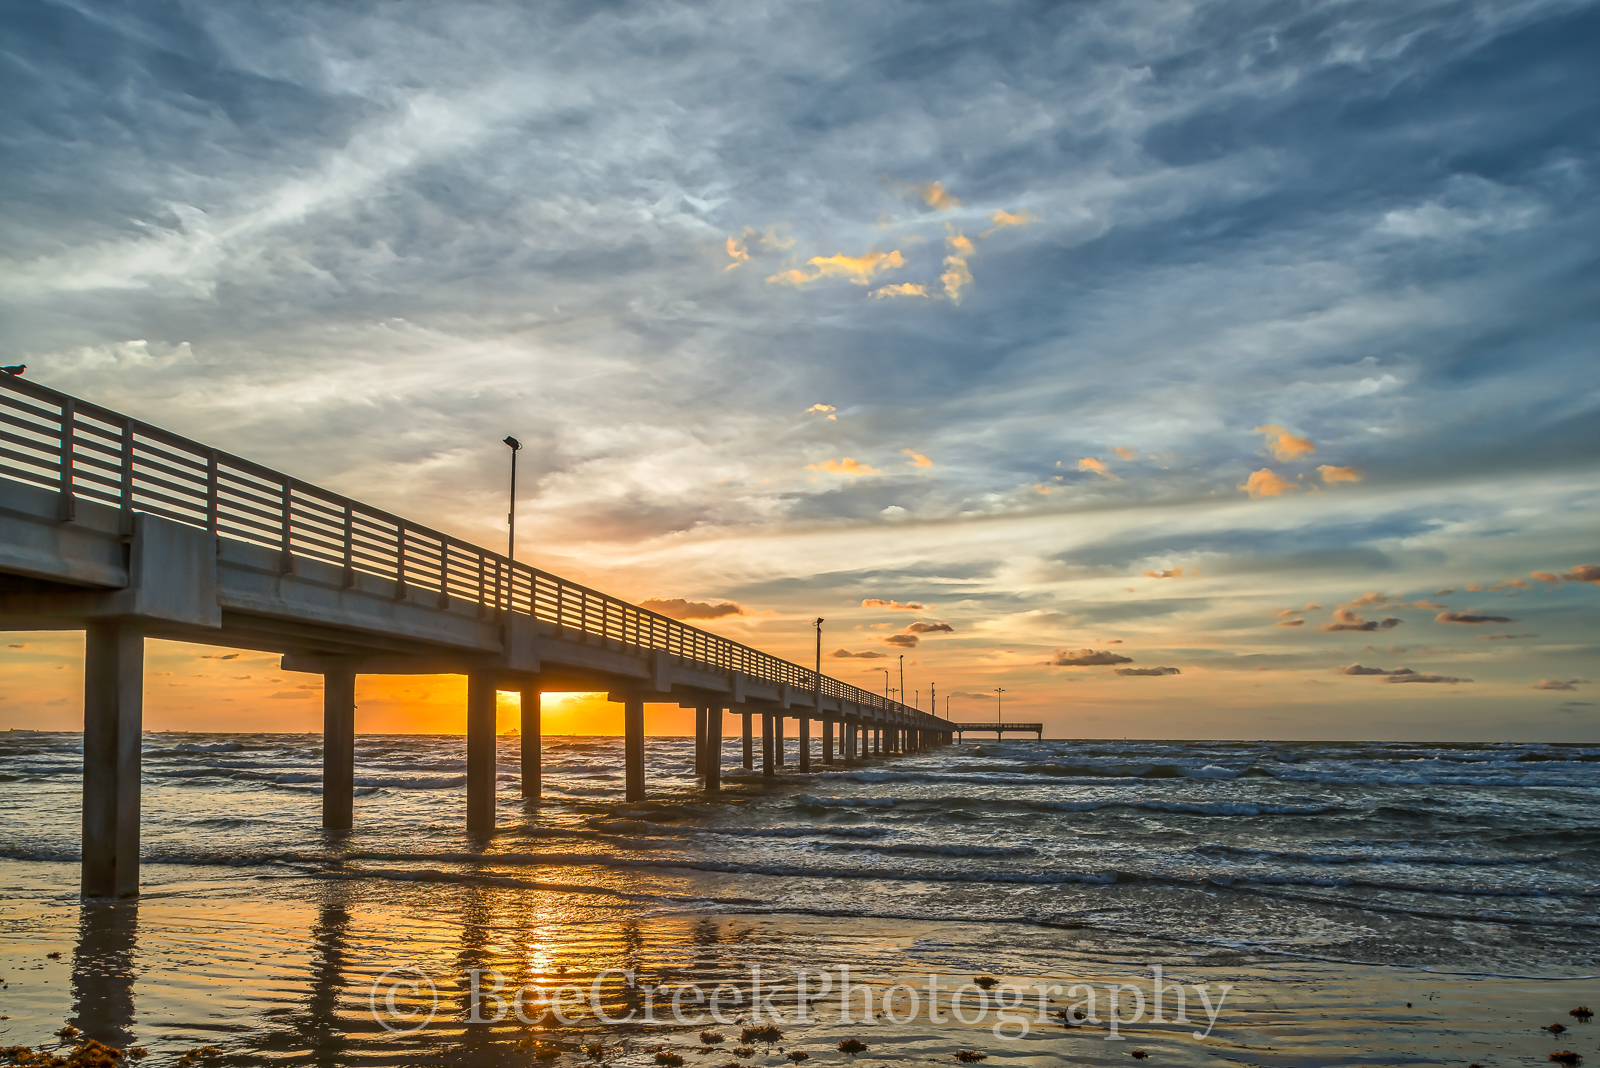 Caldwell pier, pier, Sunrise, Texas Coast, Texas beach, beach, clouds, coastal, fishing, gulf, landscape, landscapes, ocean, sea, seascape, shore sand, surf, texas, waves, beach scene, , gulf cost ima, photo